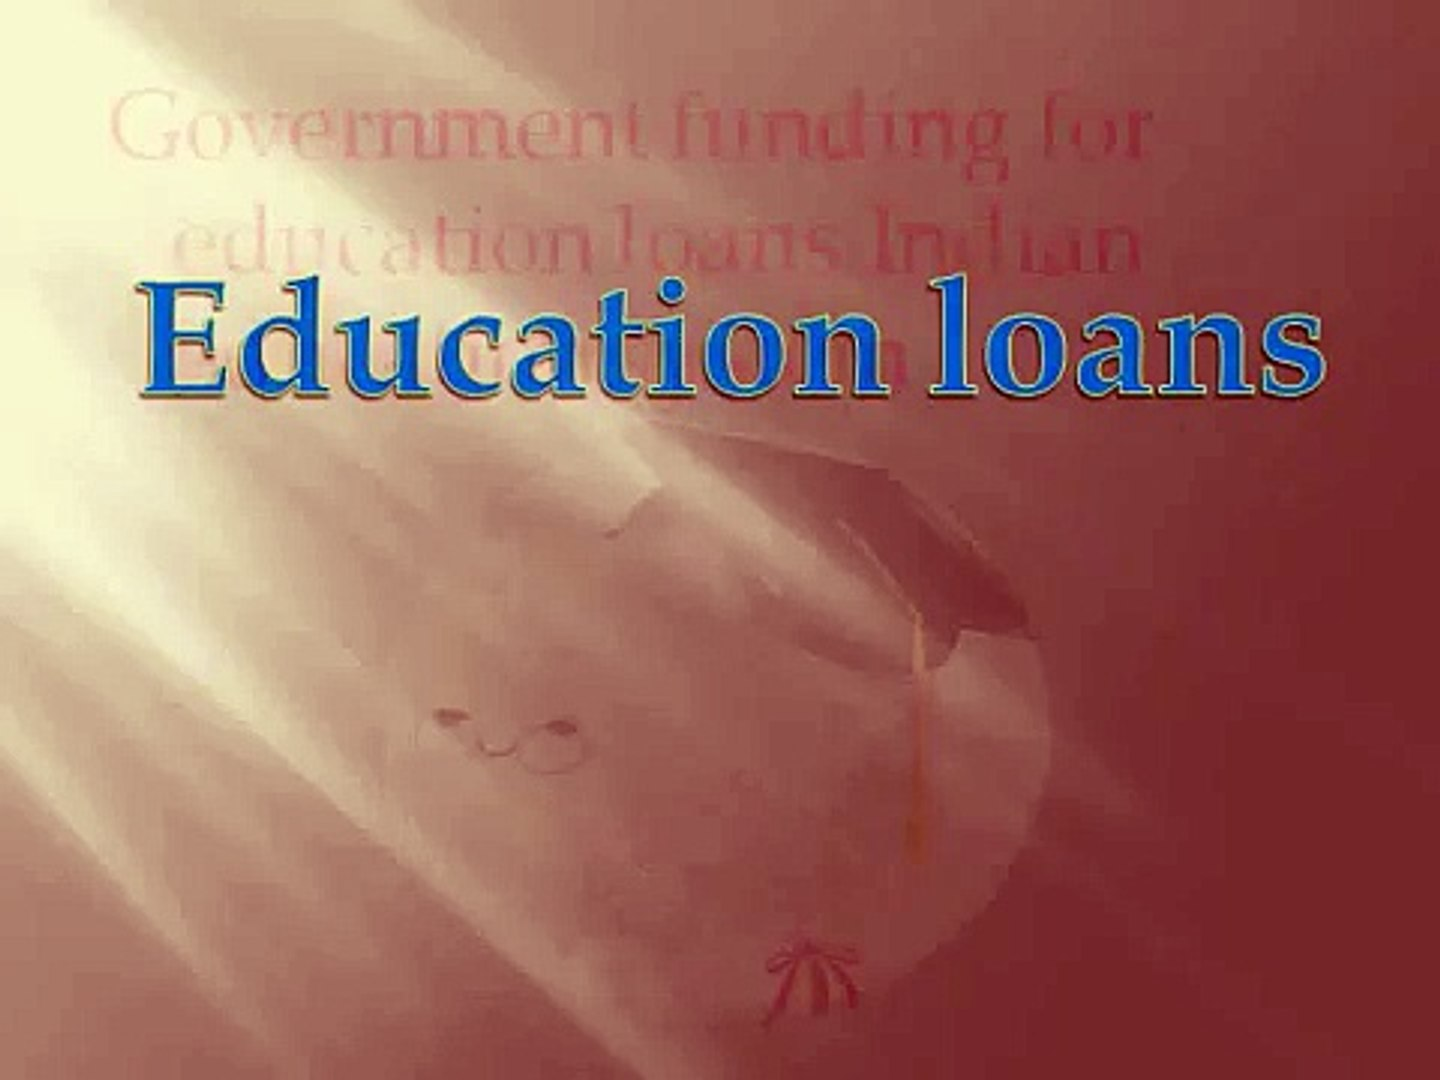 Education loans : Government funding for education loans Indian education system